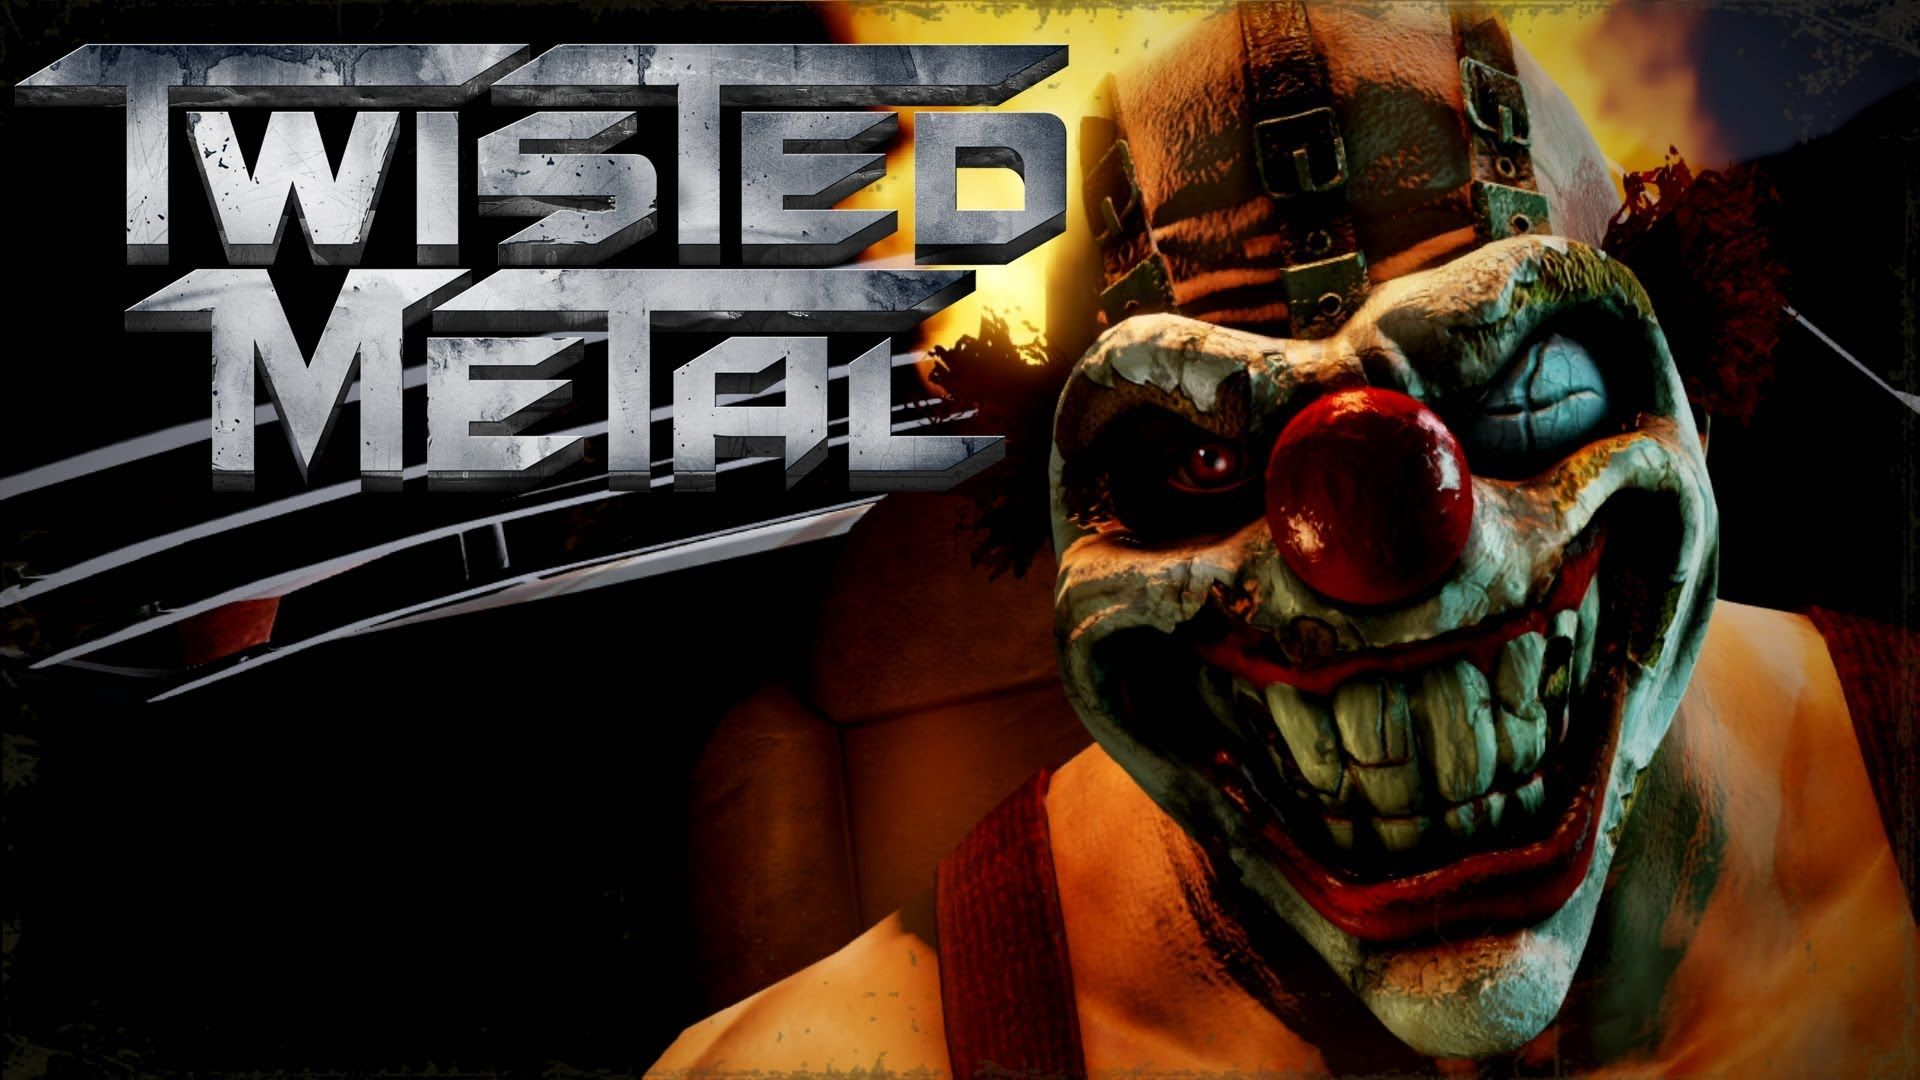 PS3] Twisted Metal *All Vehicles & Weapons Unlocked + 100% Completed ...